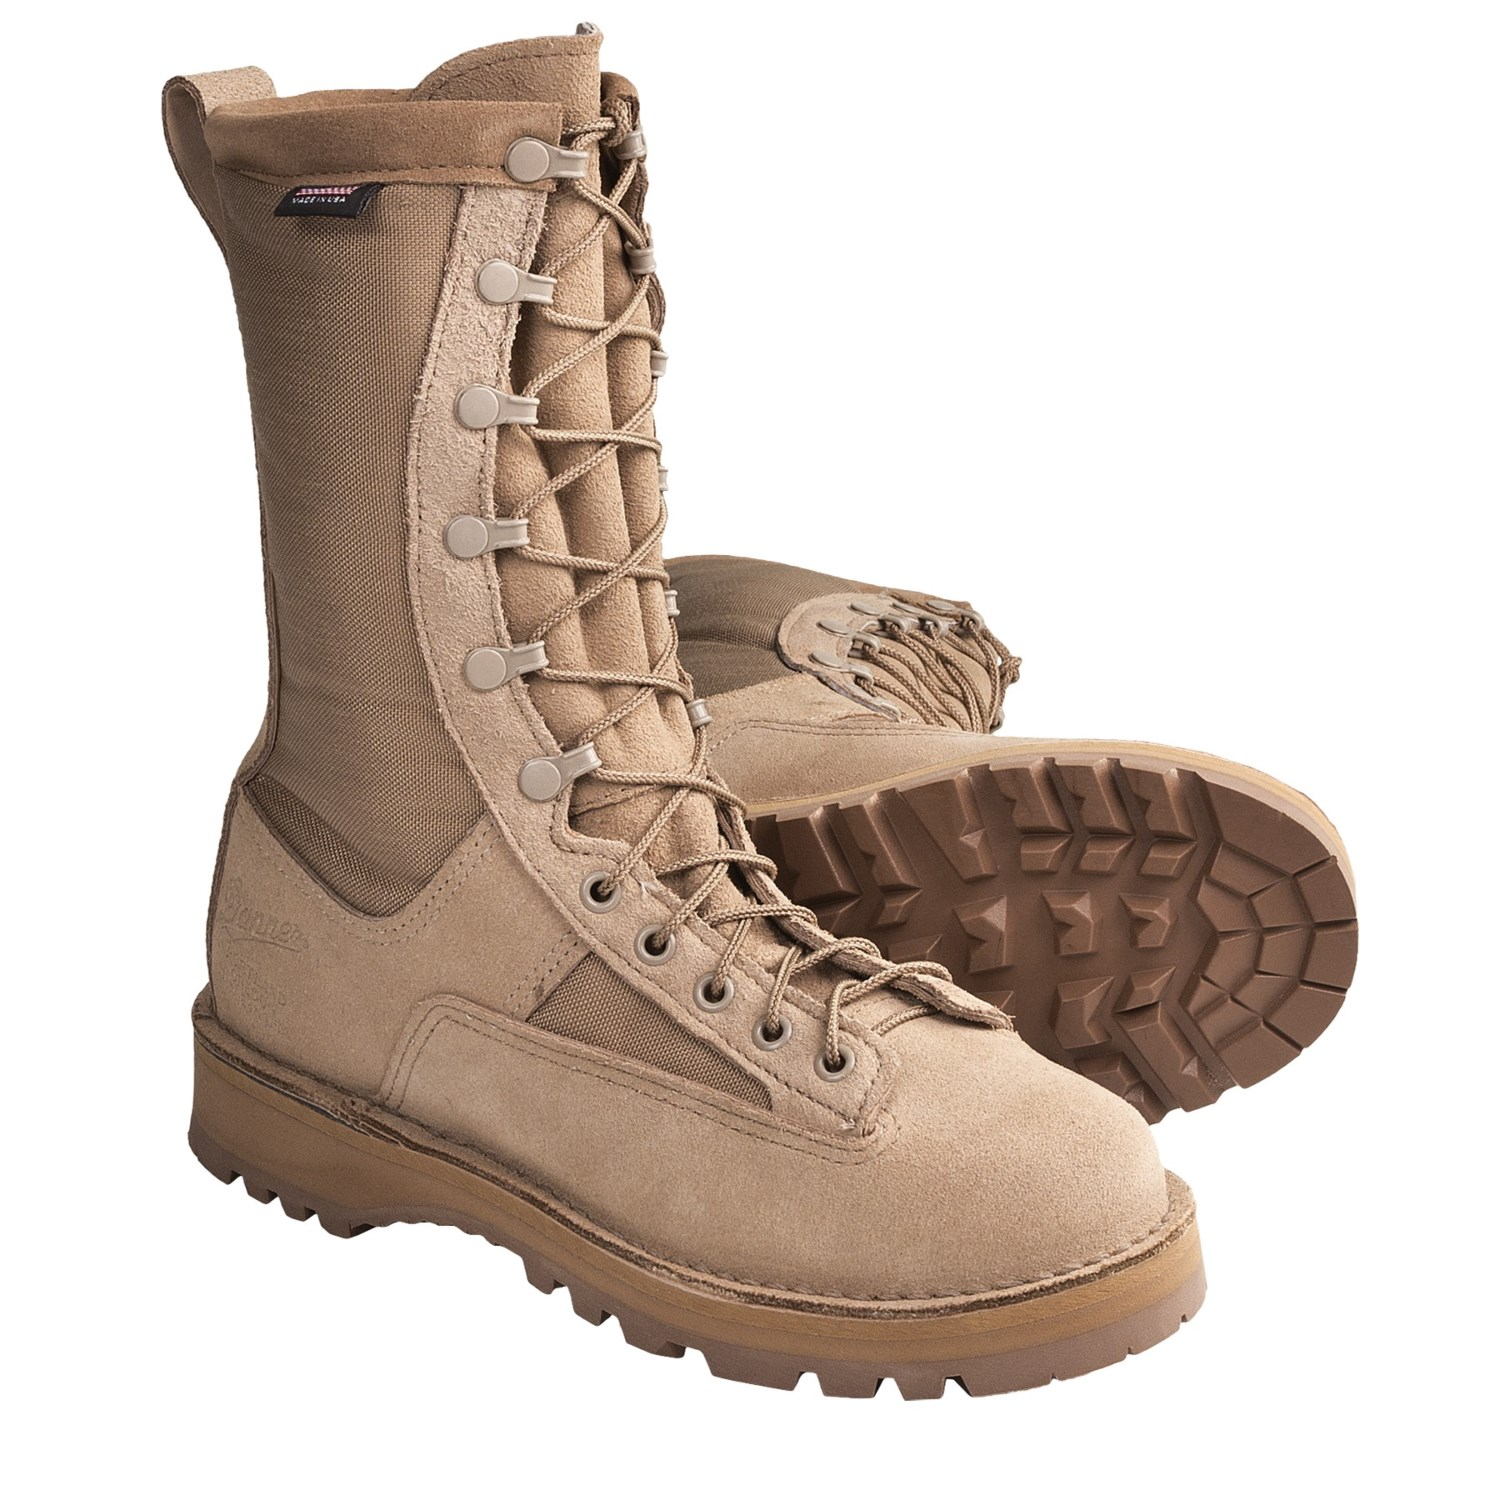 Perfect Danner Womenu0026#39;s 6u0026quot;H Waterproof Leather/Cordurau00ae Boots | GEMPLERu0026#39;S